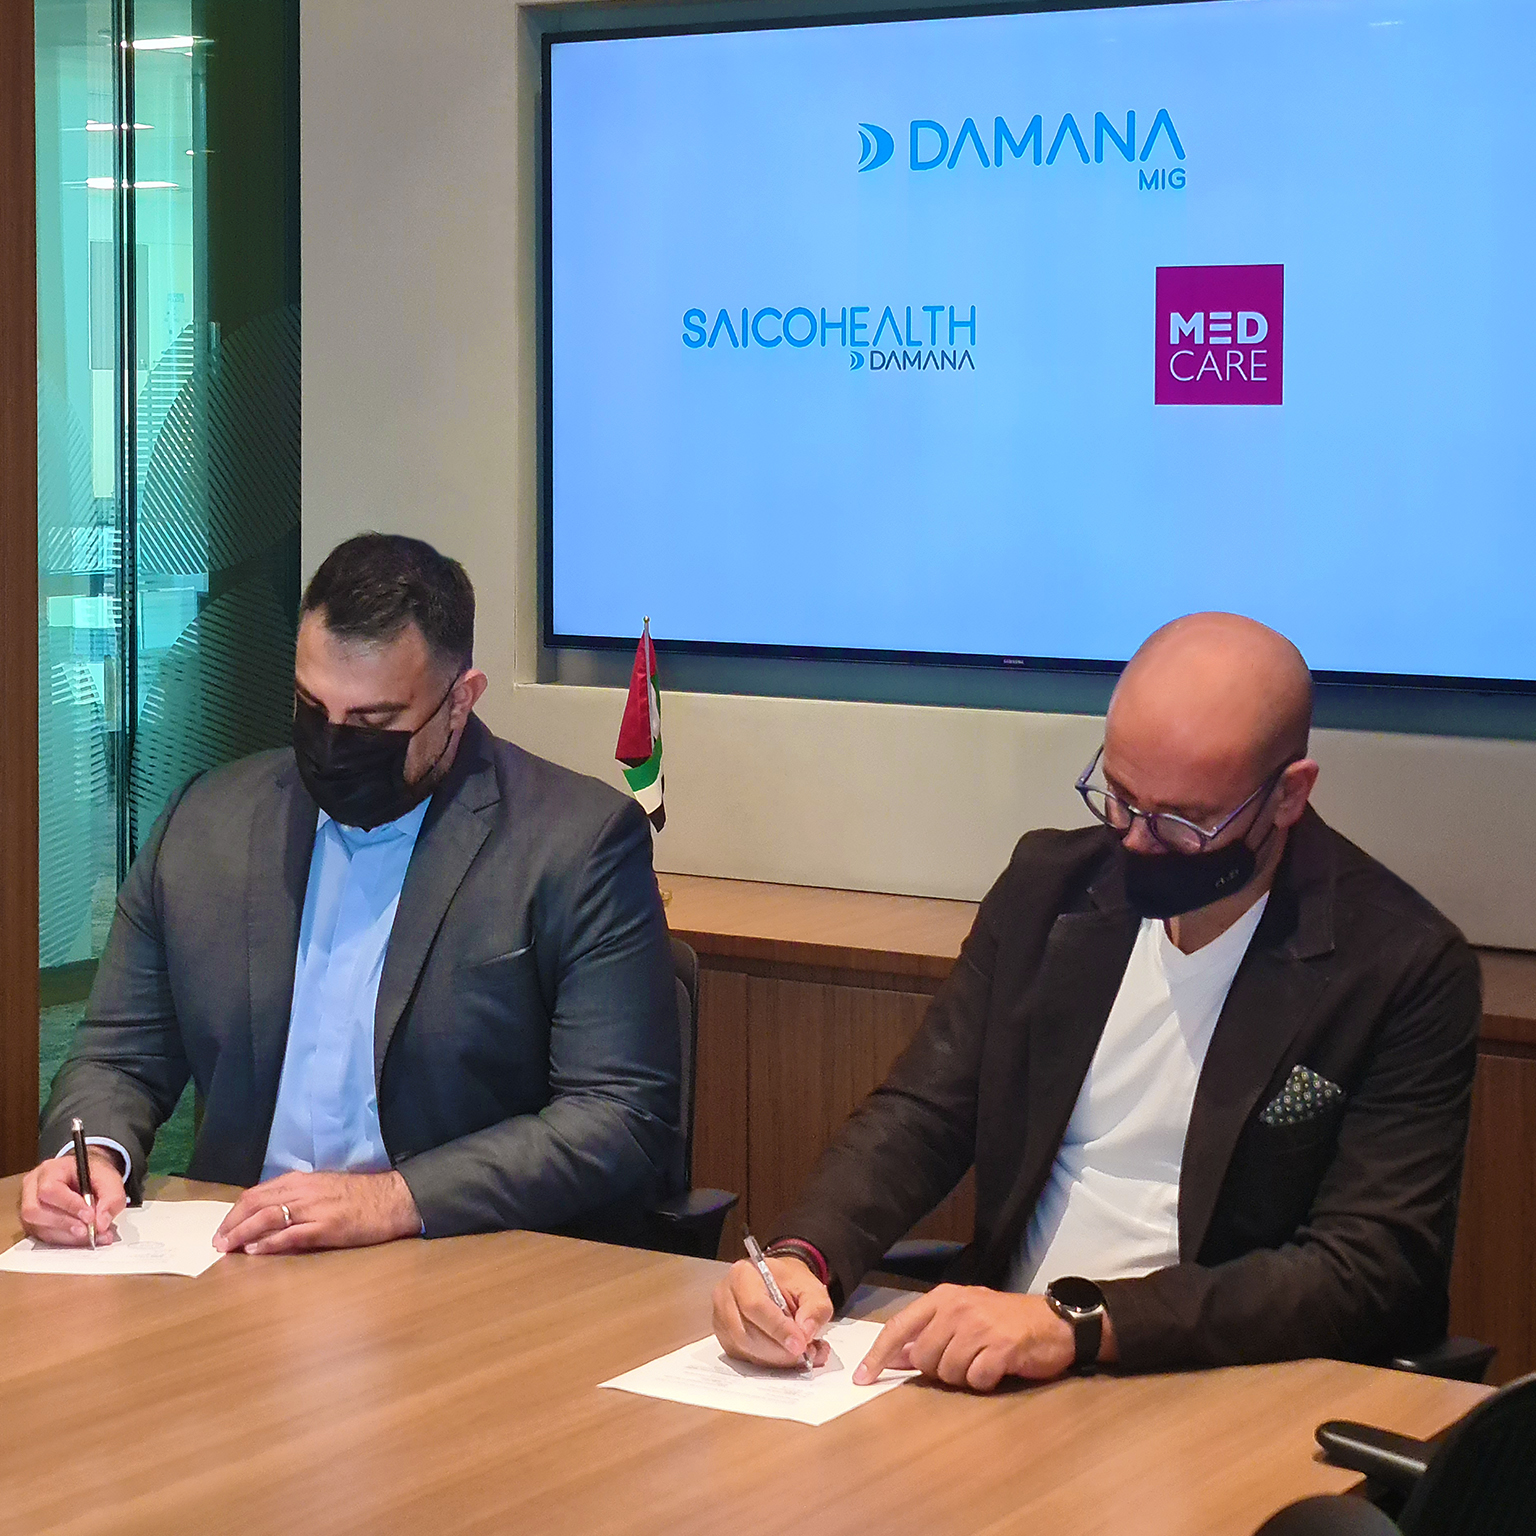 DAMANA AND MEDCARE JOIN FORCES TO LAUNCH INNOVATIVE CHRONIC CARE MANAGEMENT PROGRAMME